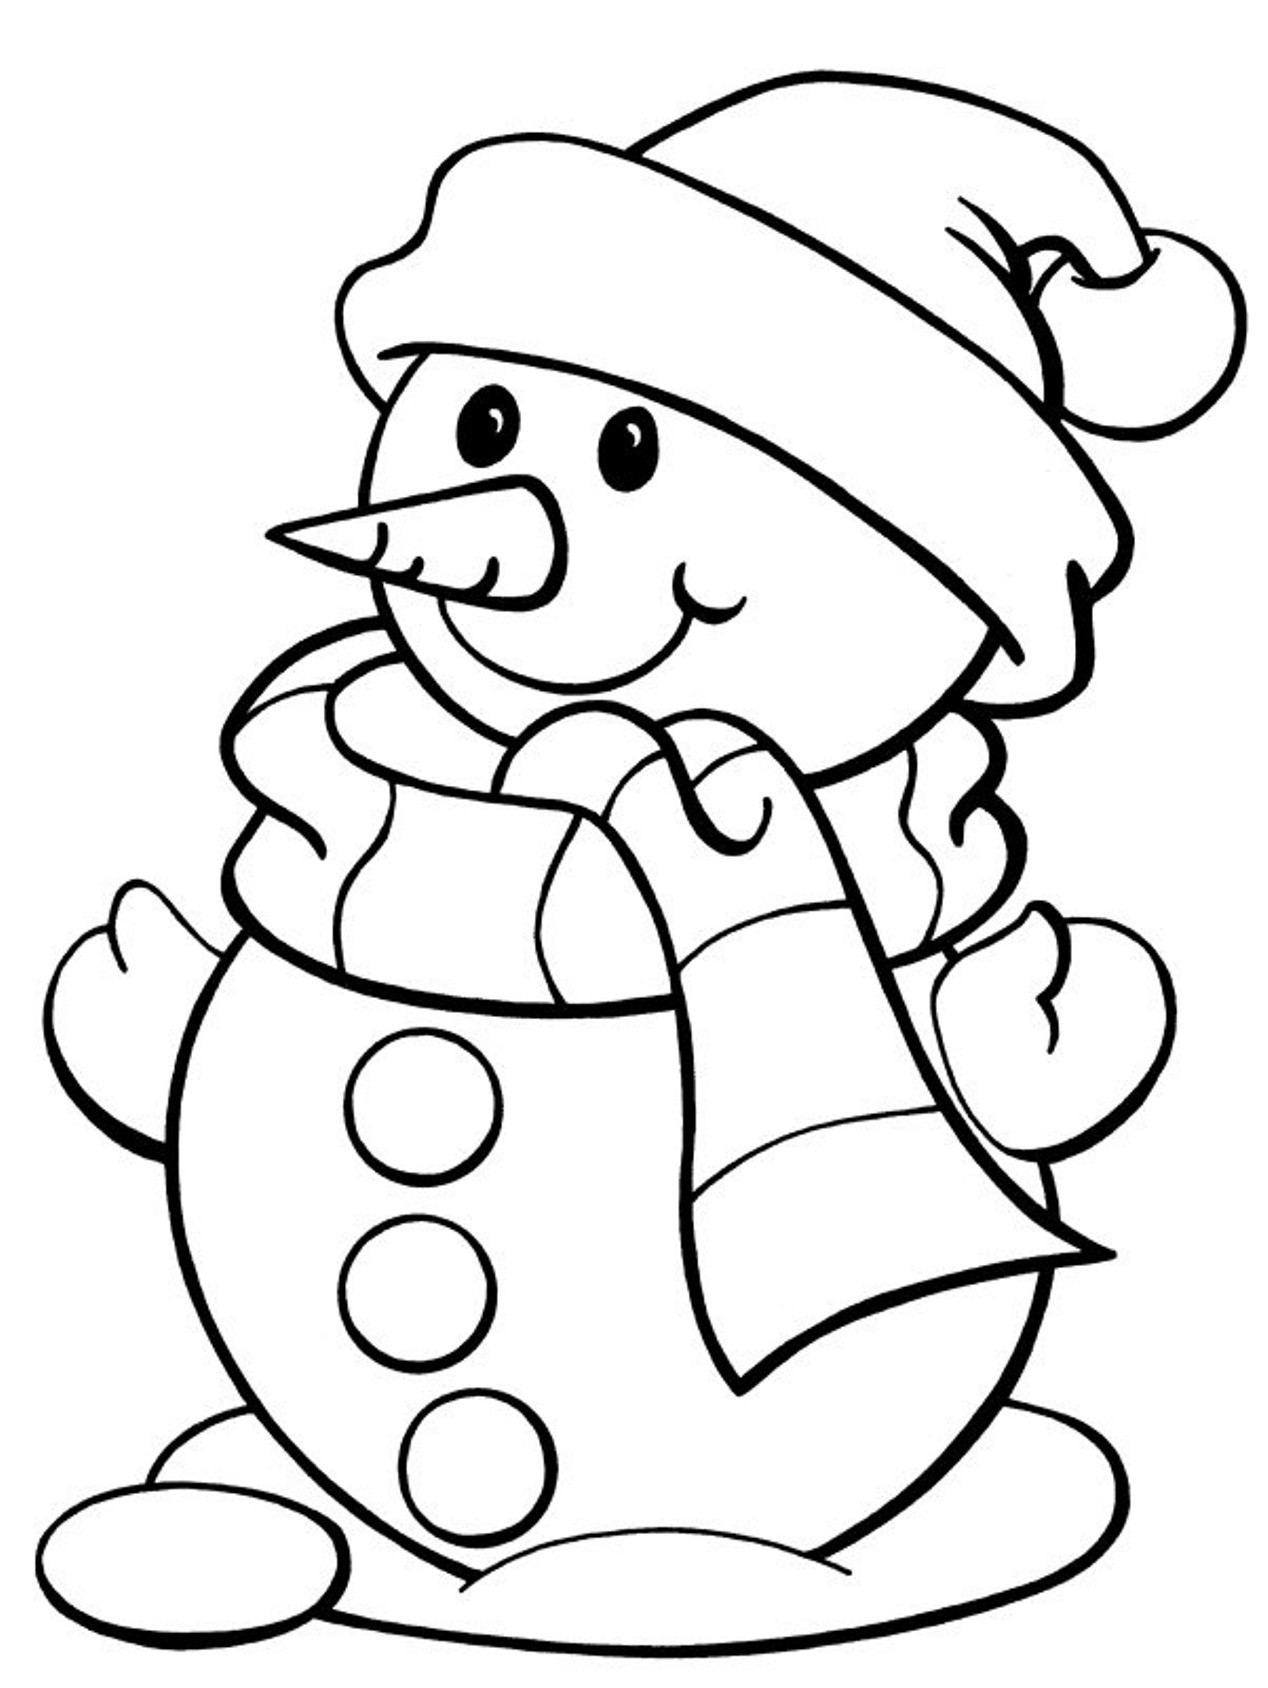 Free Winter Printable Coloring Pages  23 Winter season coloring pages Print Color Craft